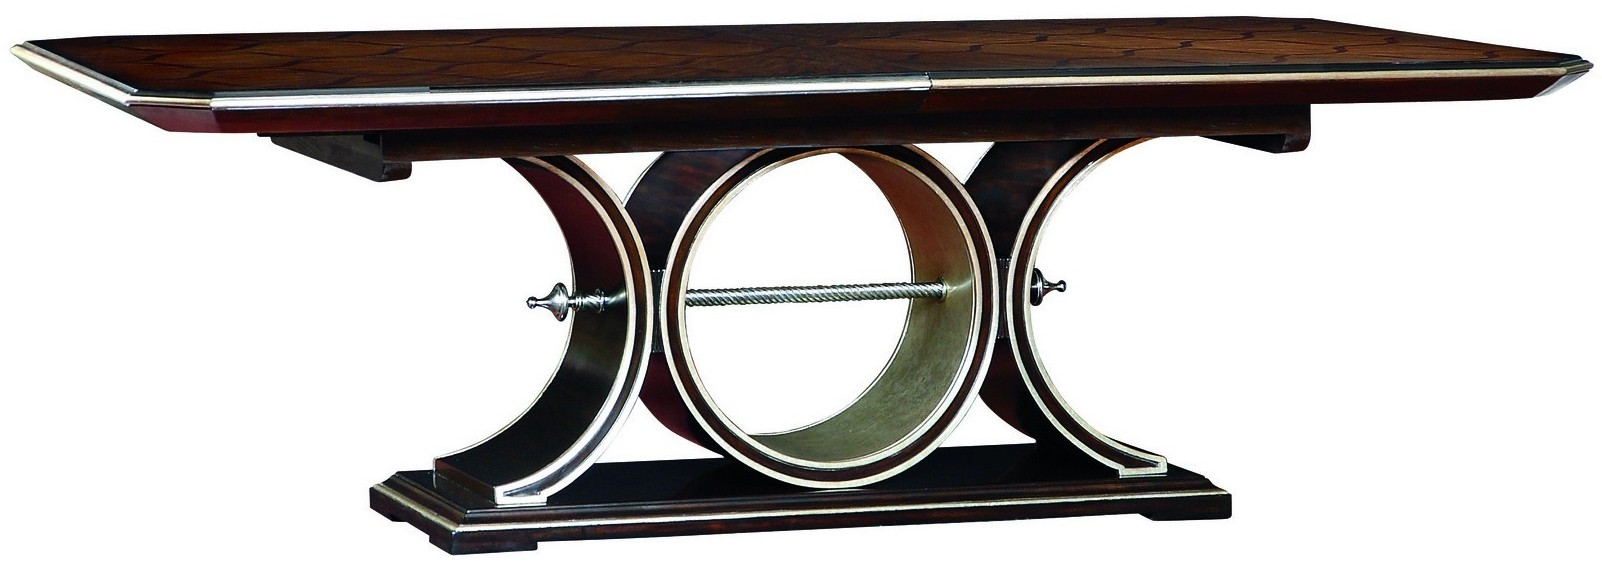 Dining Tables Art Deco Table With Beautiful Wooden Inlay Work